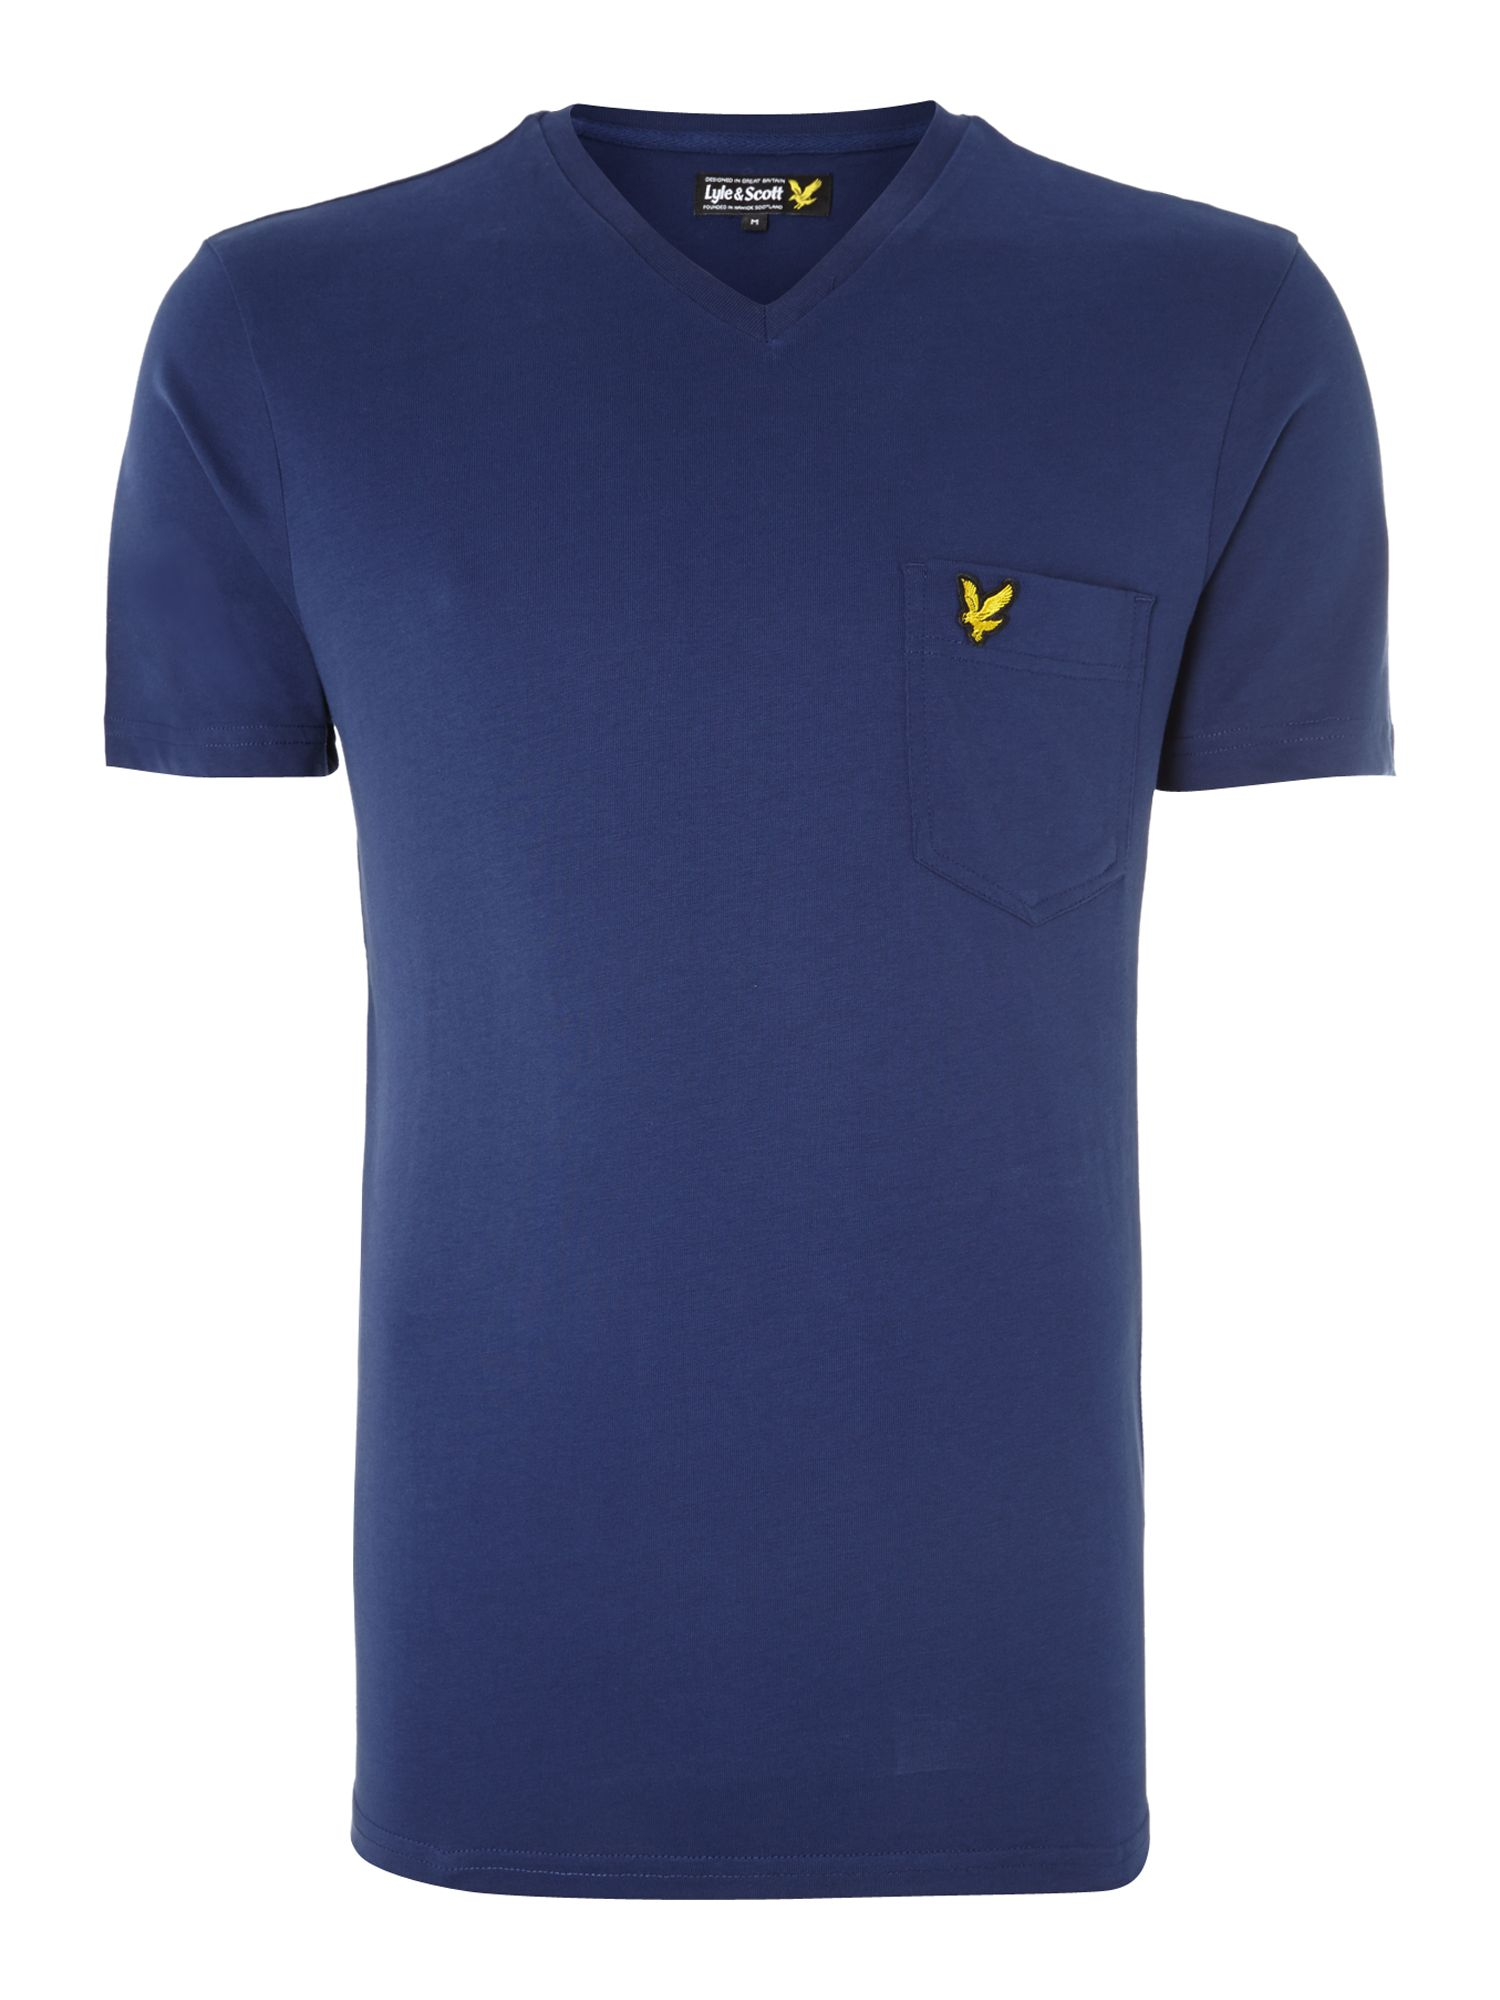 V neck pocket t shirt